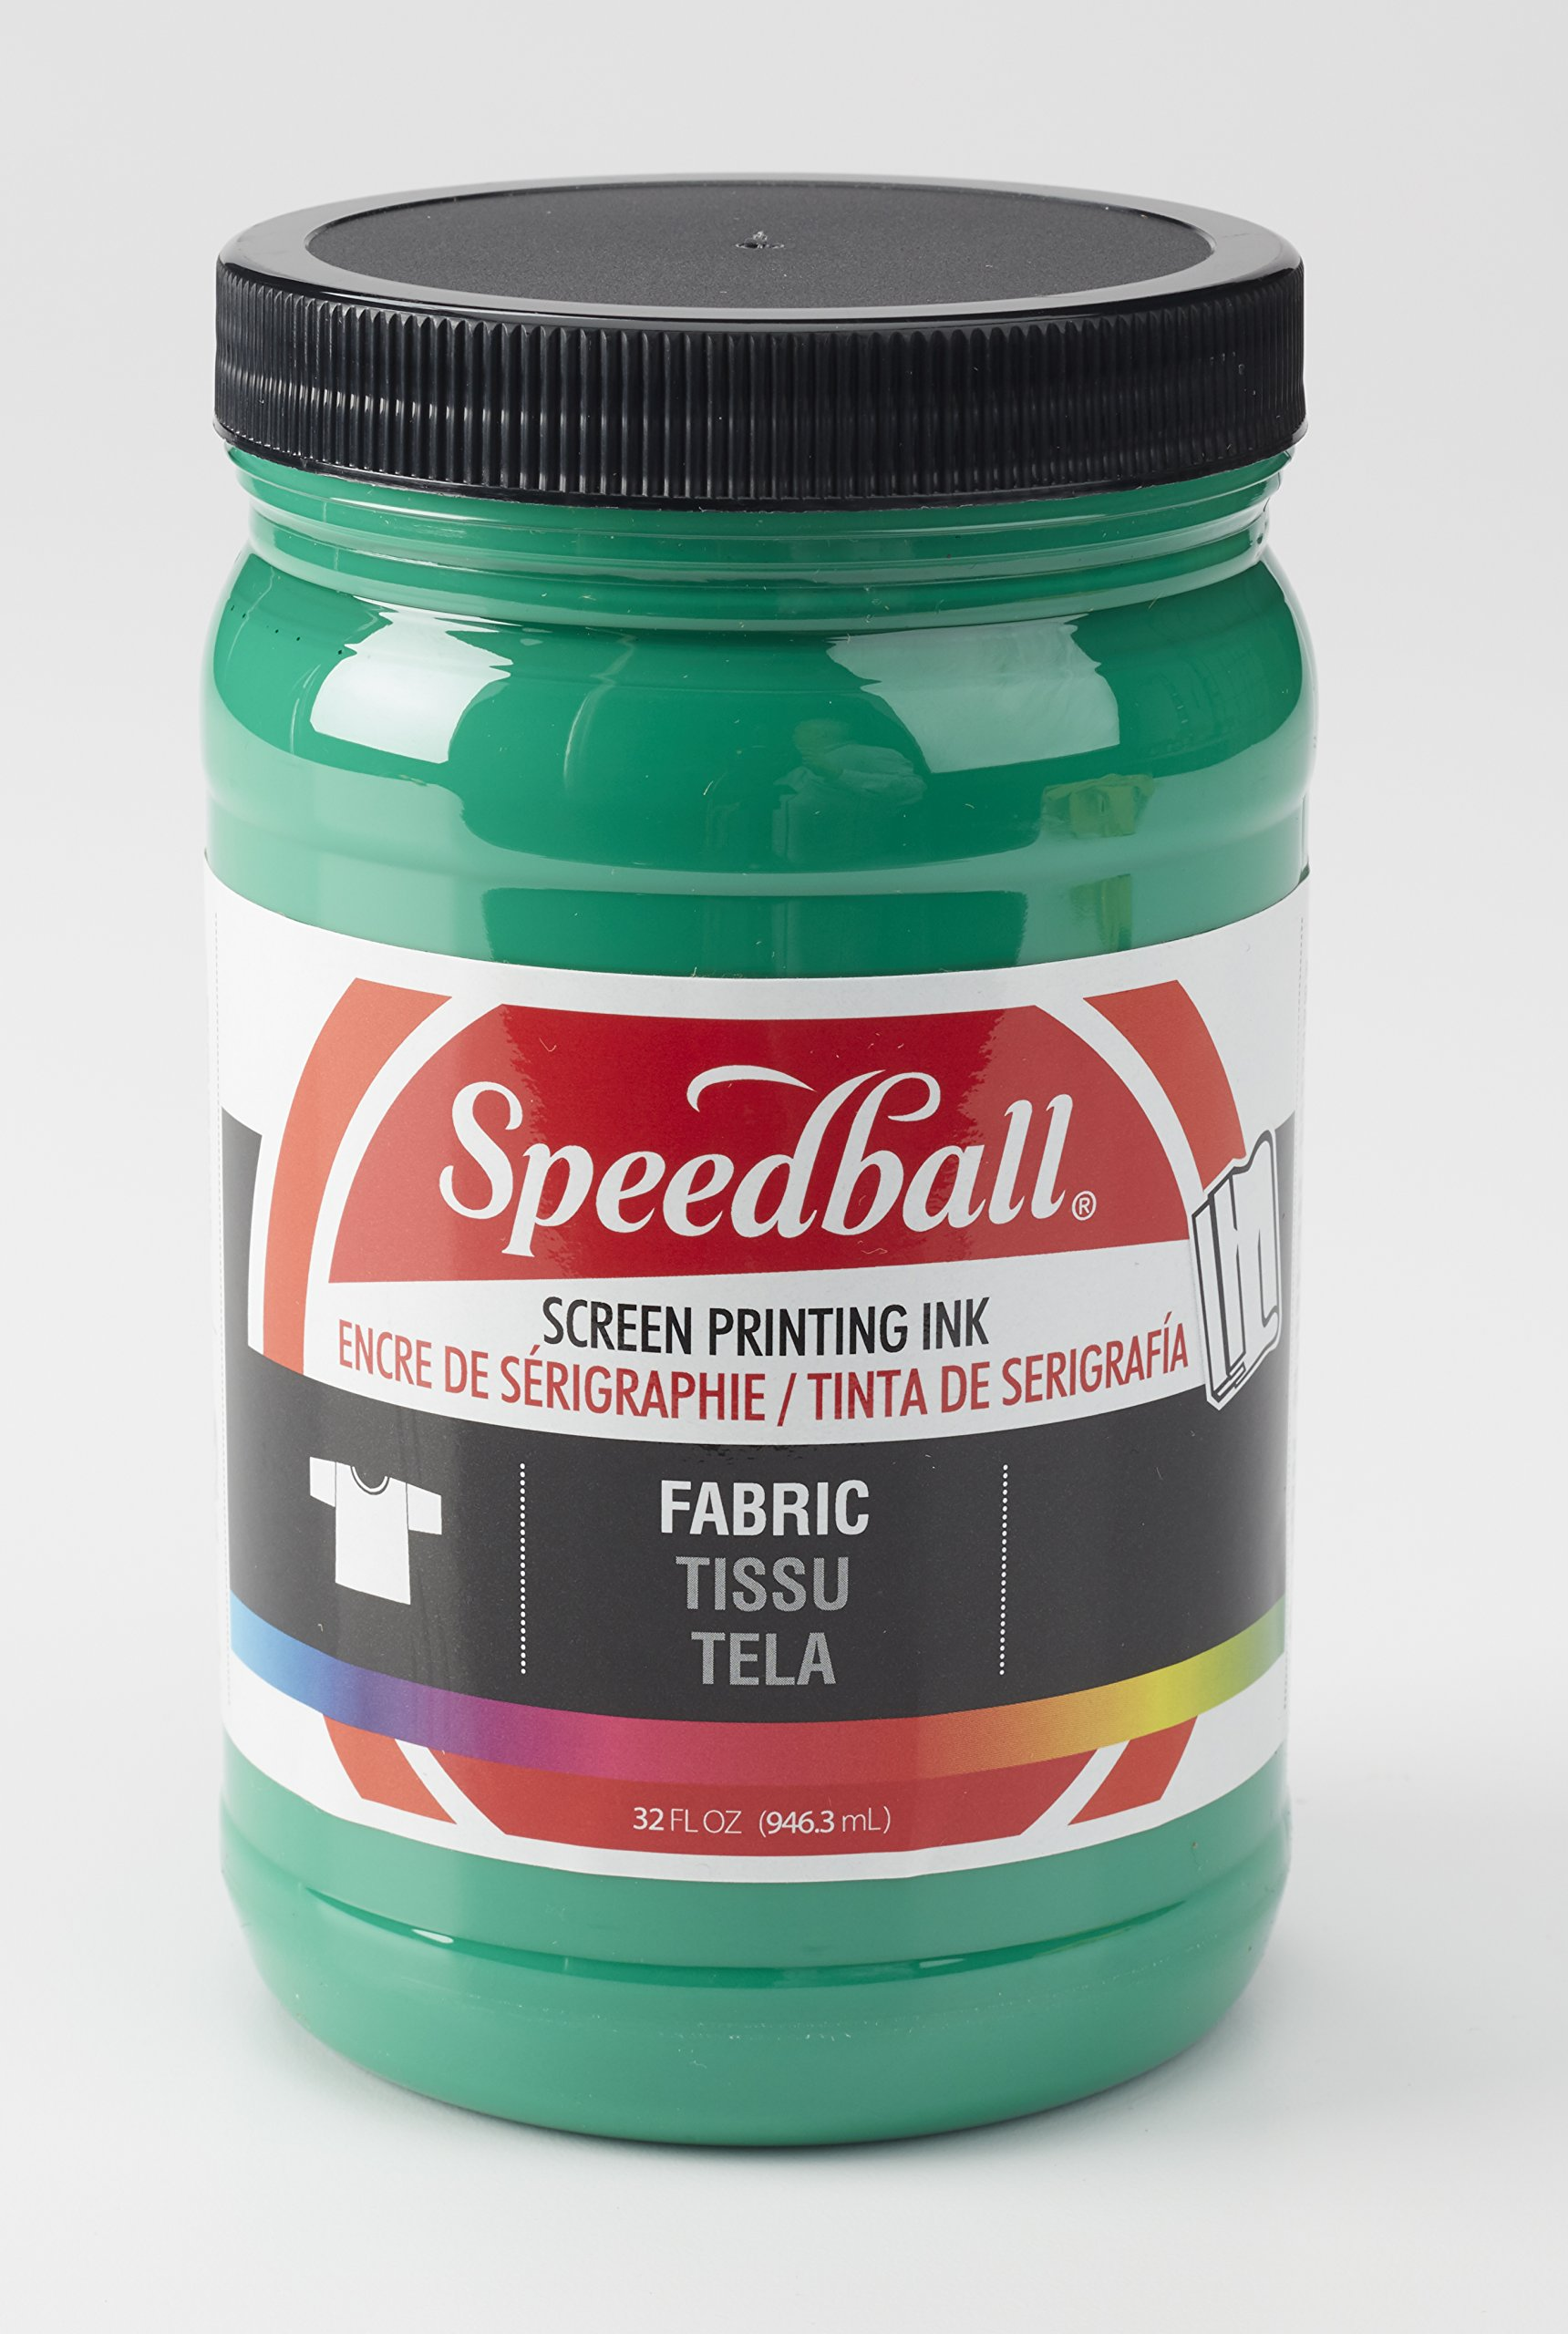 Speedball 004604 Fabric Screen Printing Ink, 32 Fl. oz, Green by Speedball